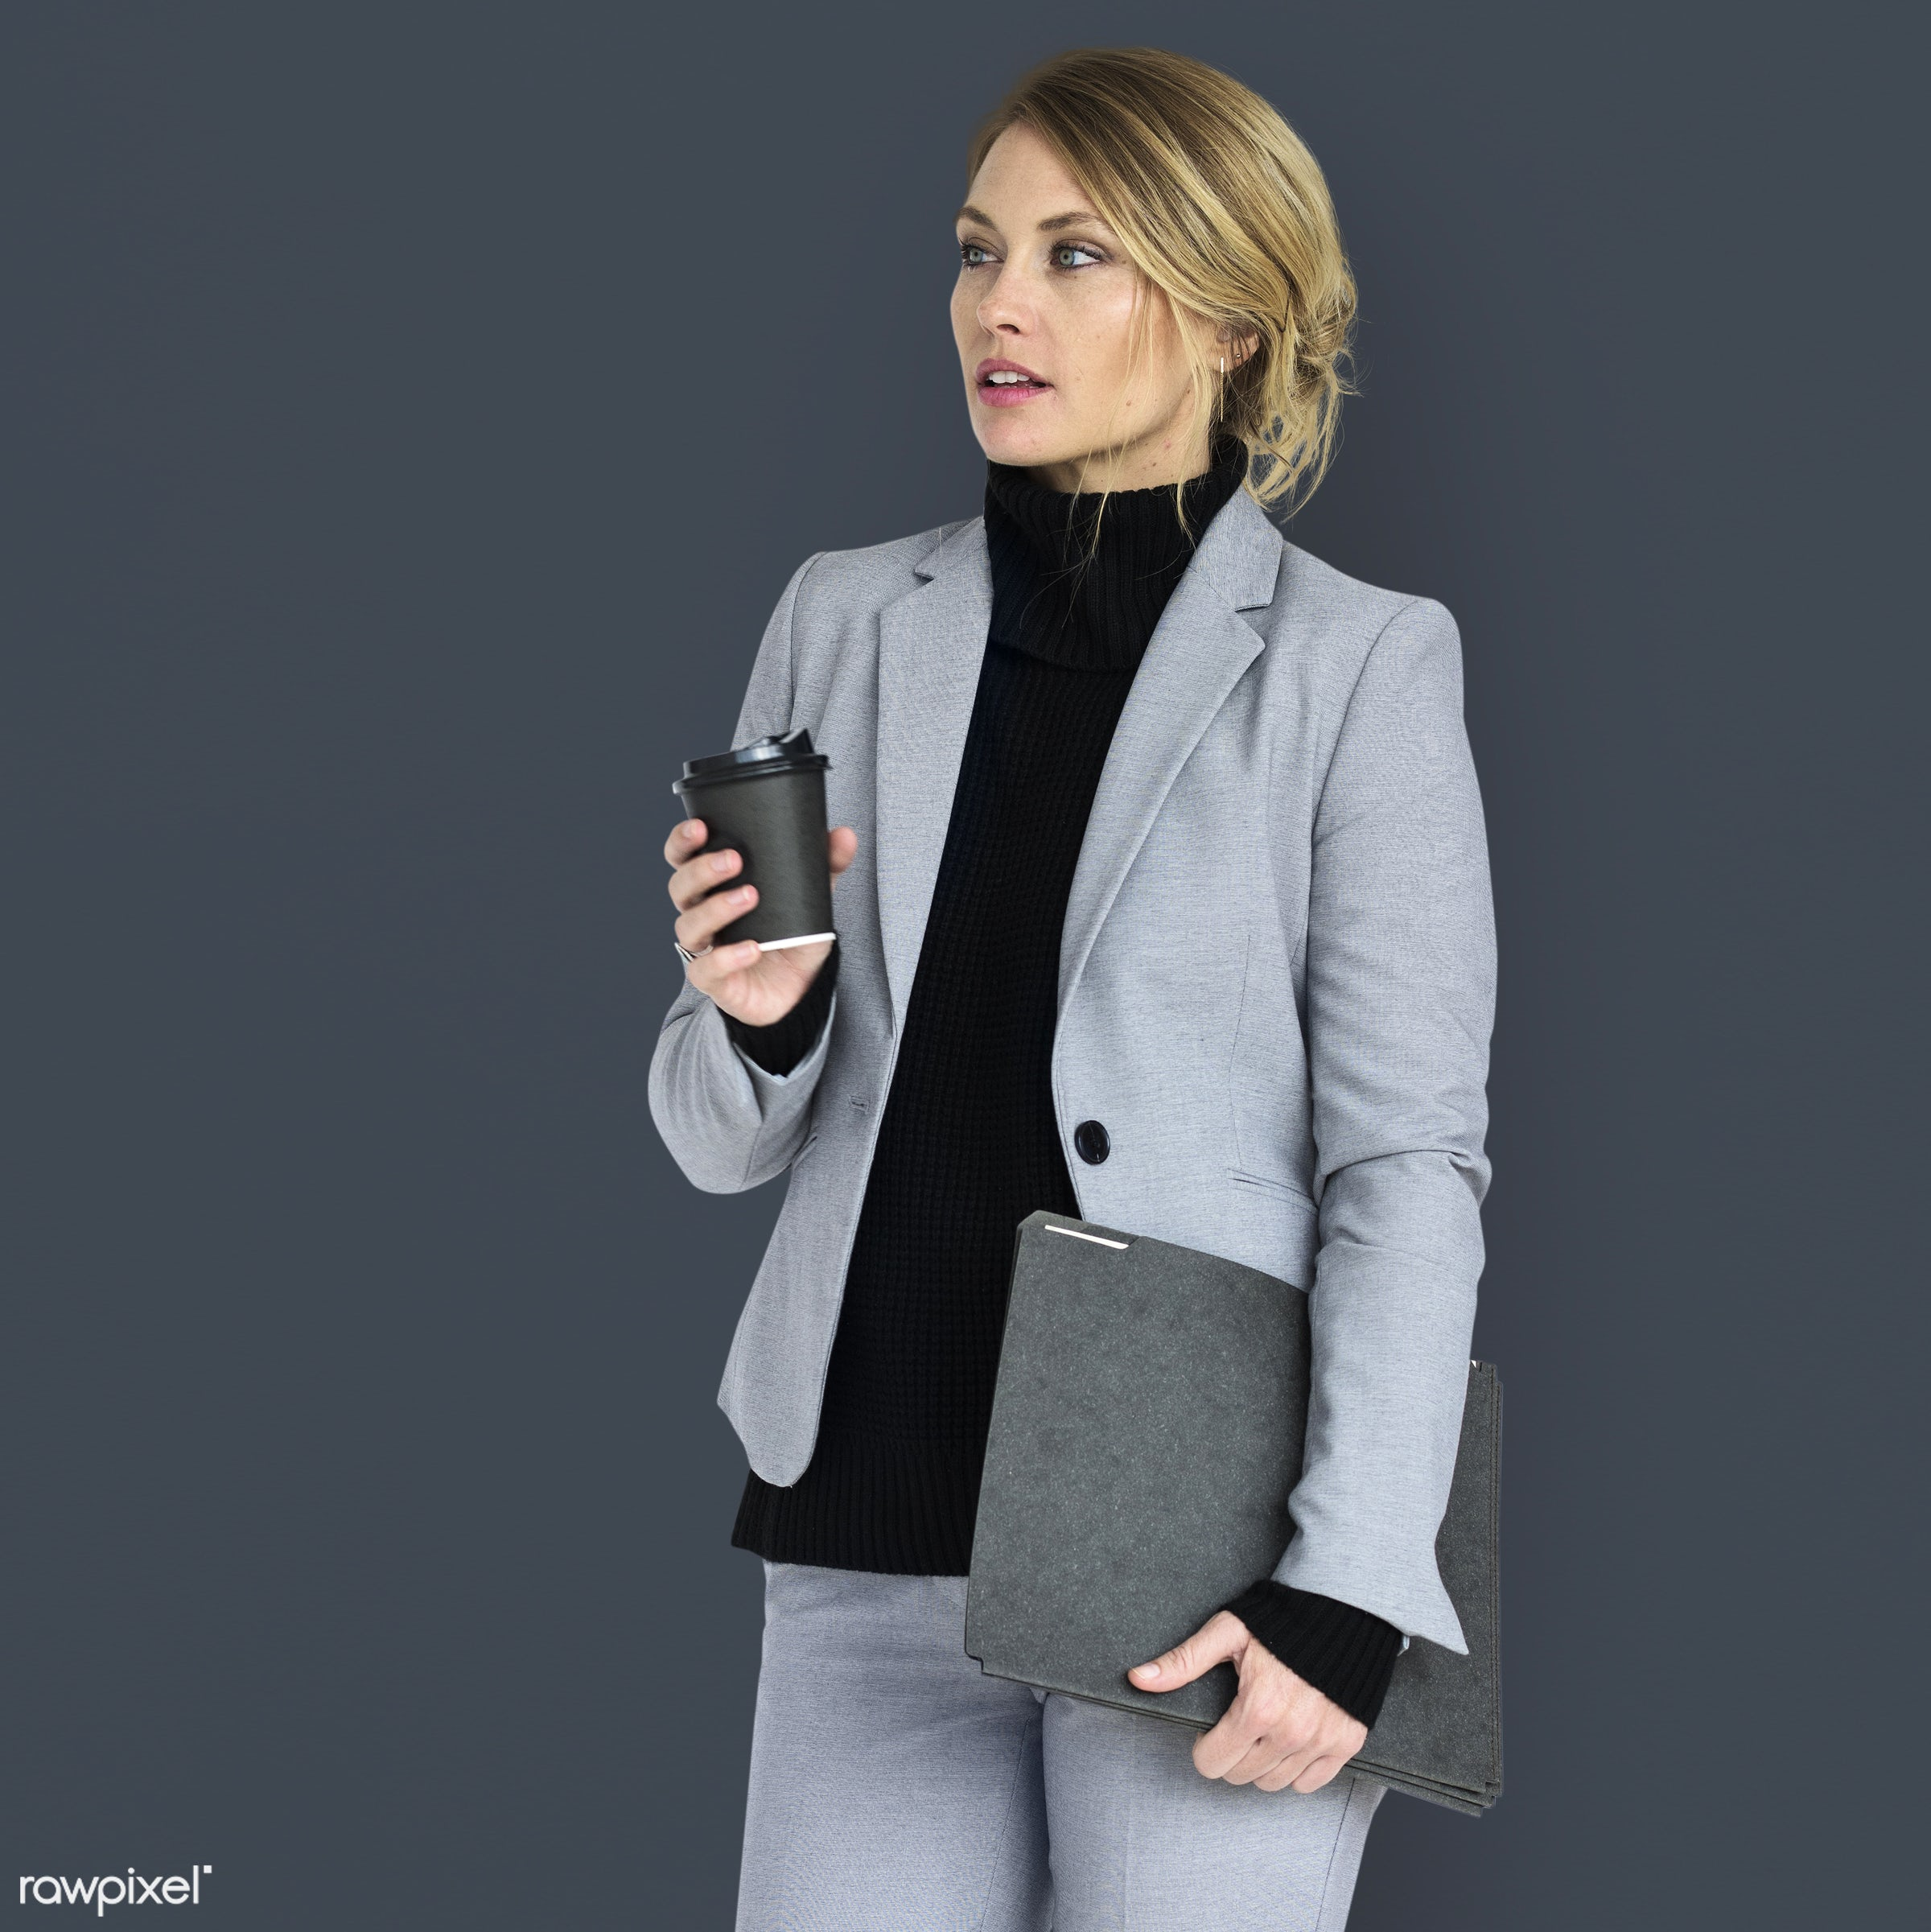 expression, studio, person, folders, people, formal dressing, business, caucasian, girl, woman, work, isolated, formal wear...